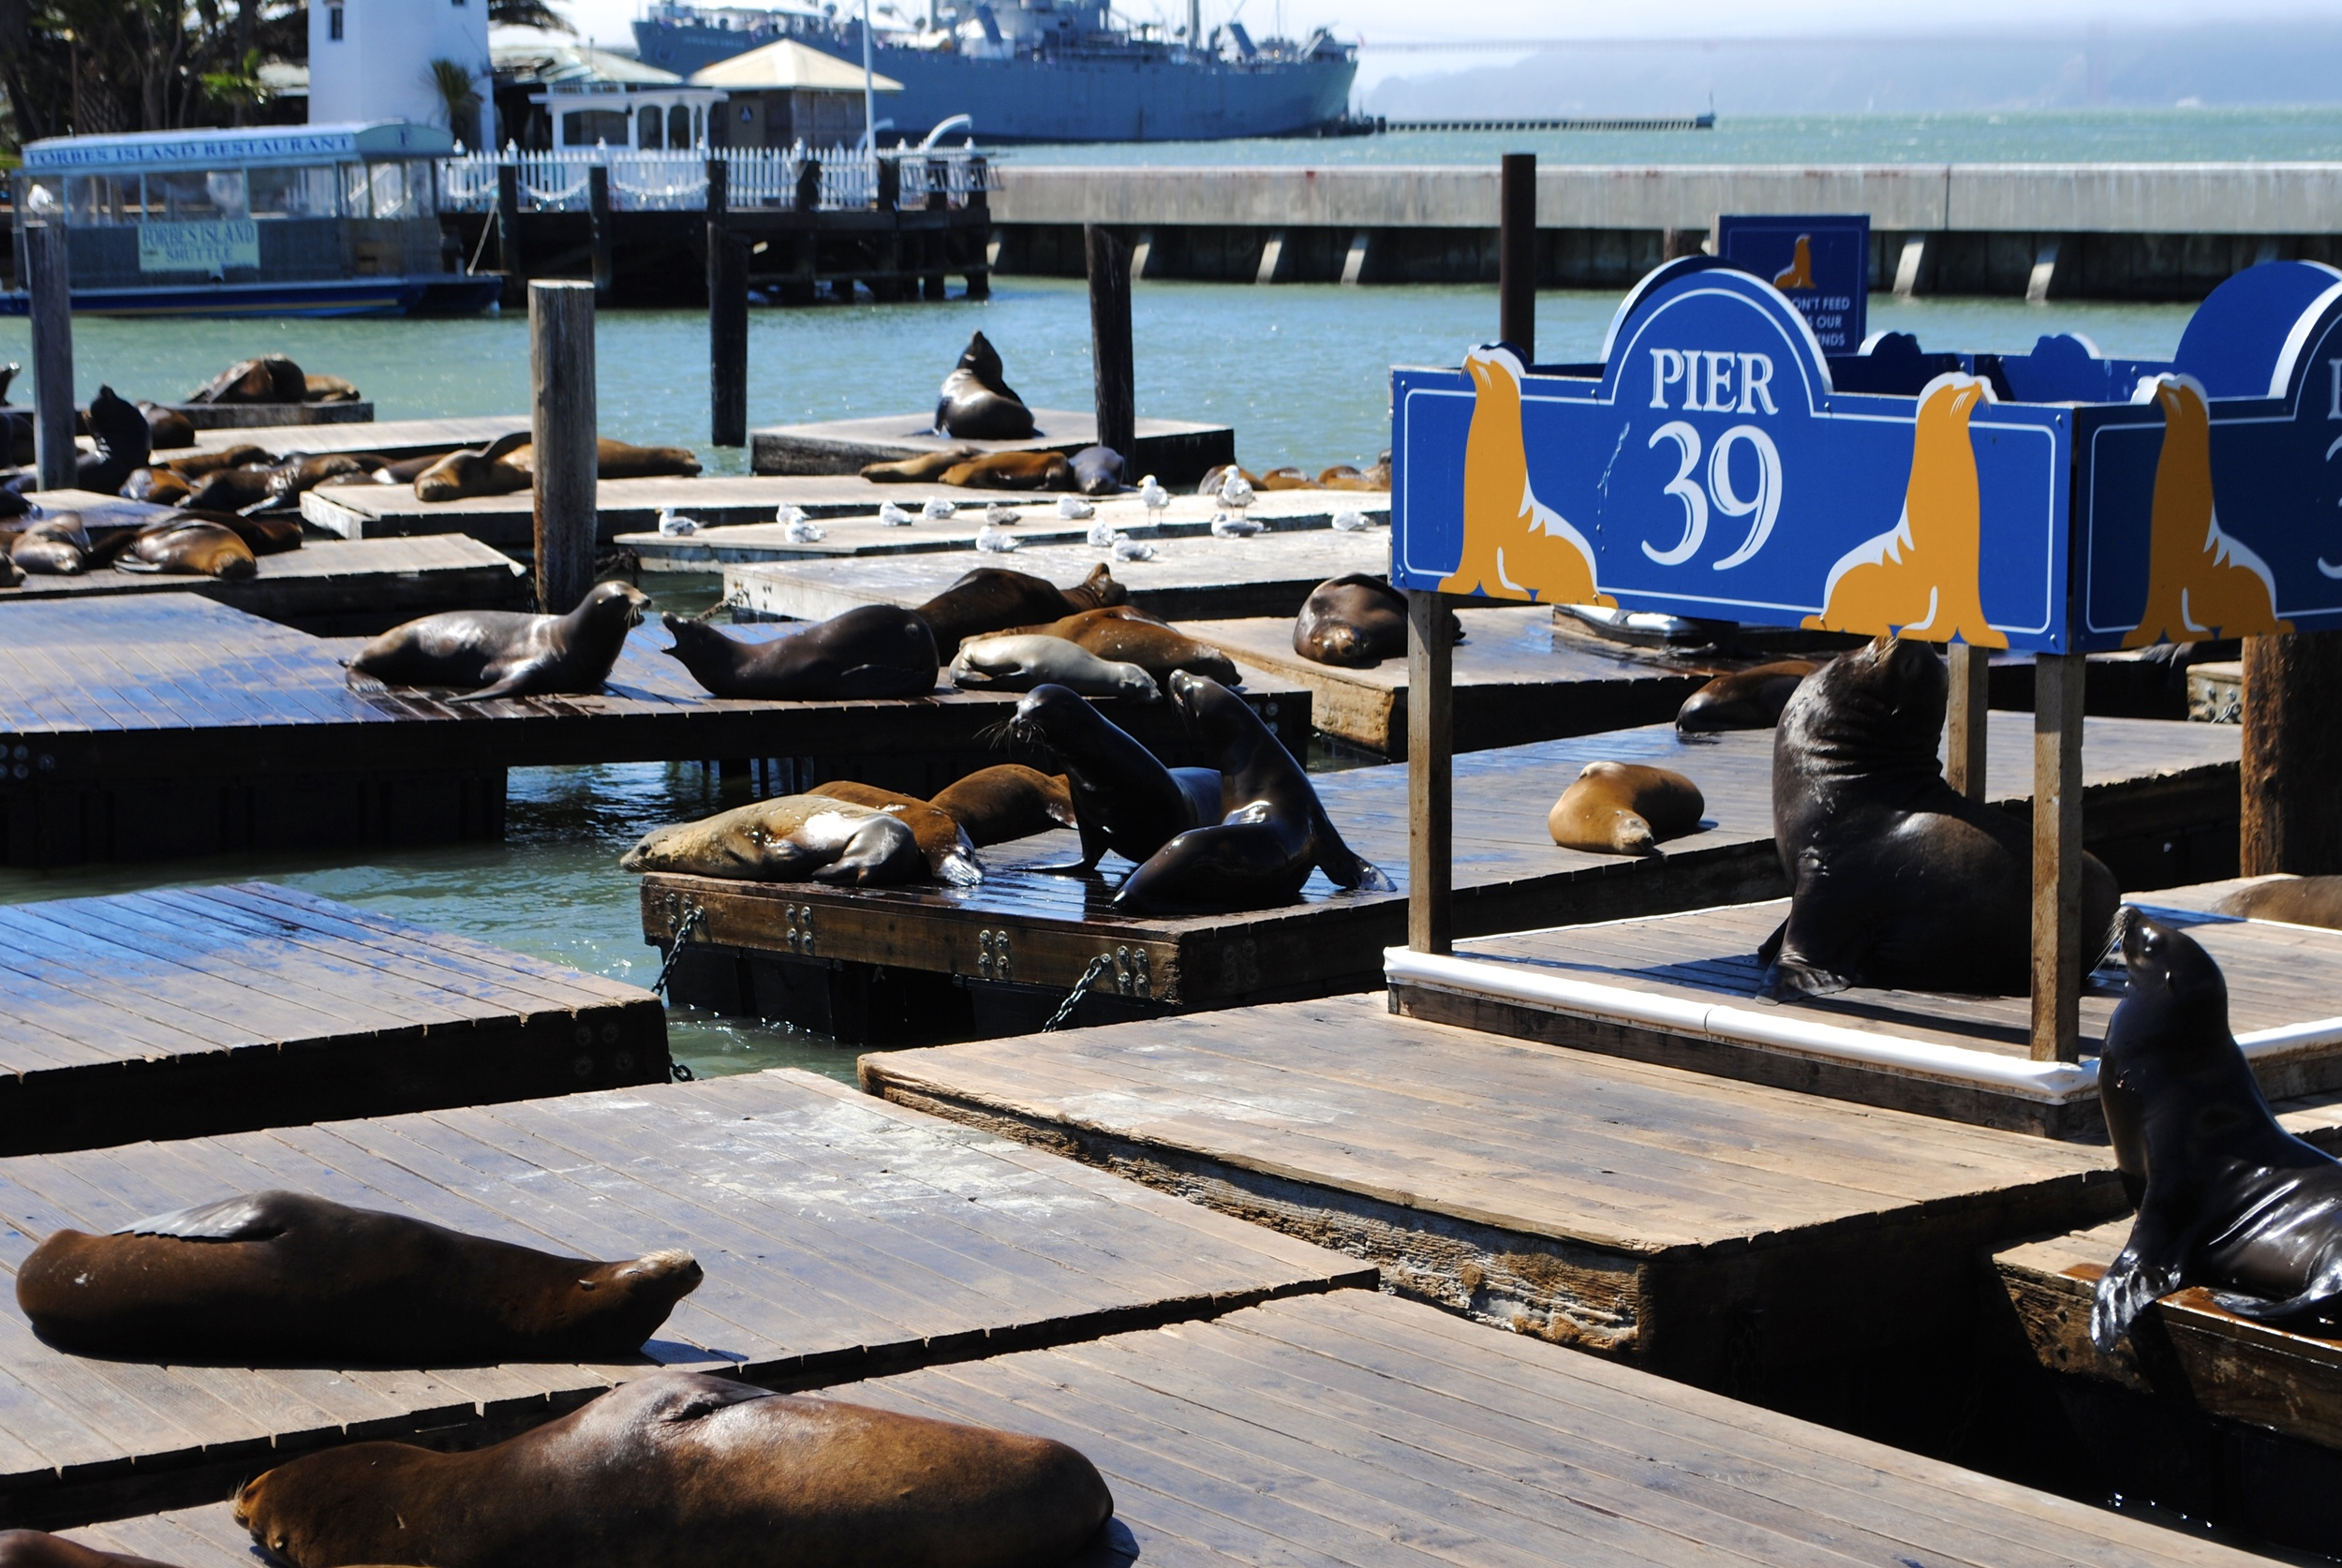 Watching the seals at Pier 39 is a riot. There is truly hours of entertainment here.